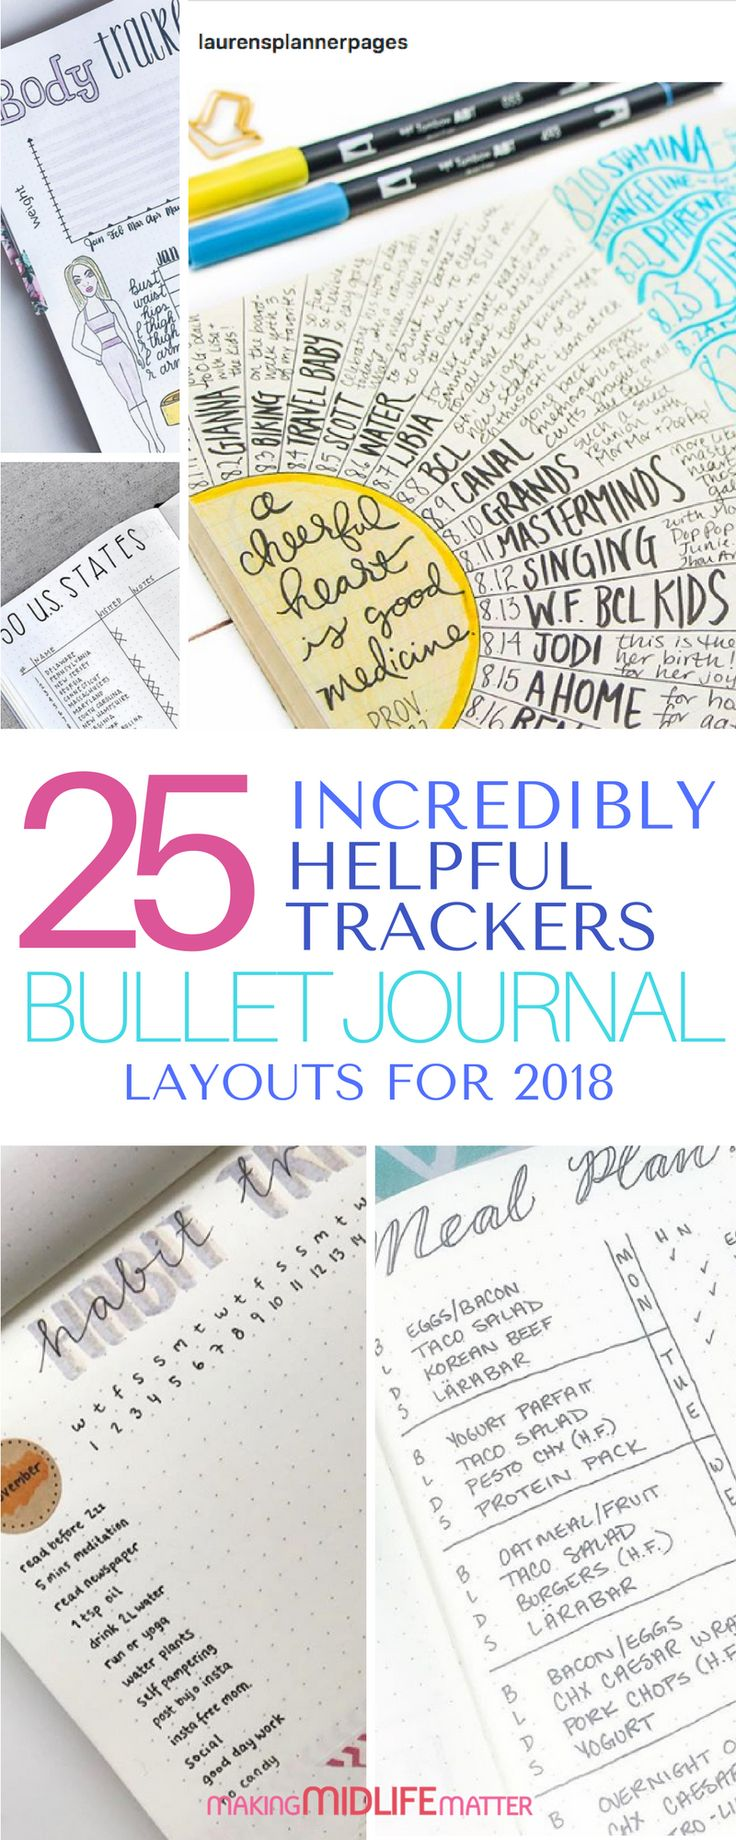 Need some tips and inspiration to get yourself organized and track your life in 2018? Here are 25+ bullet journal layouts, spreads and collections to help you. #bujo #bulletjournal #journal via @makingmidlife